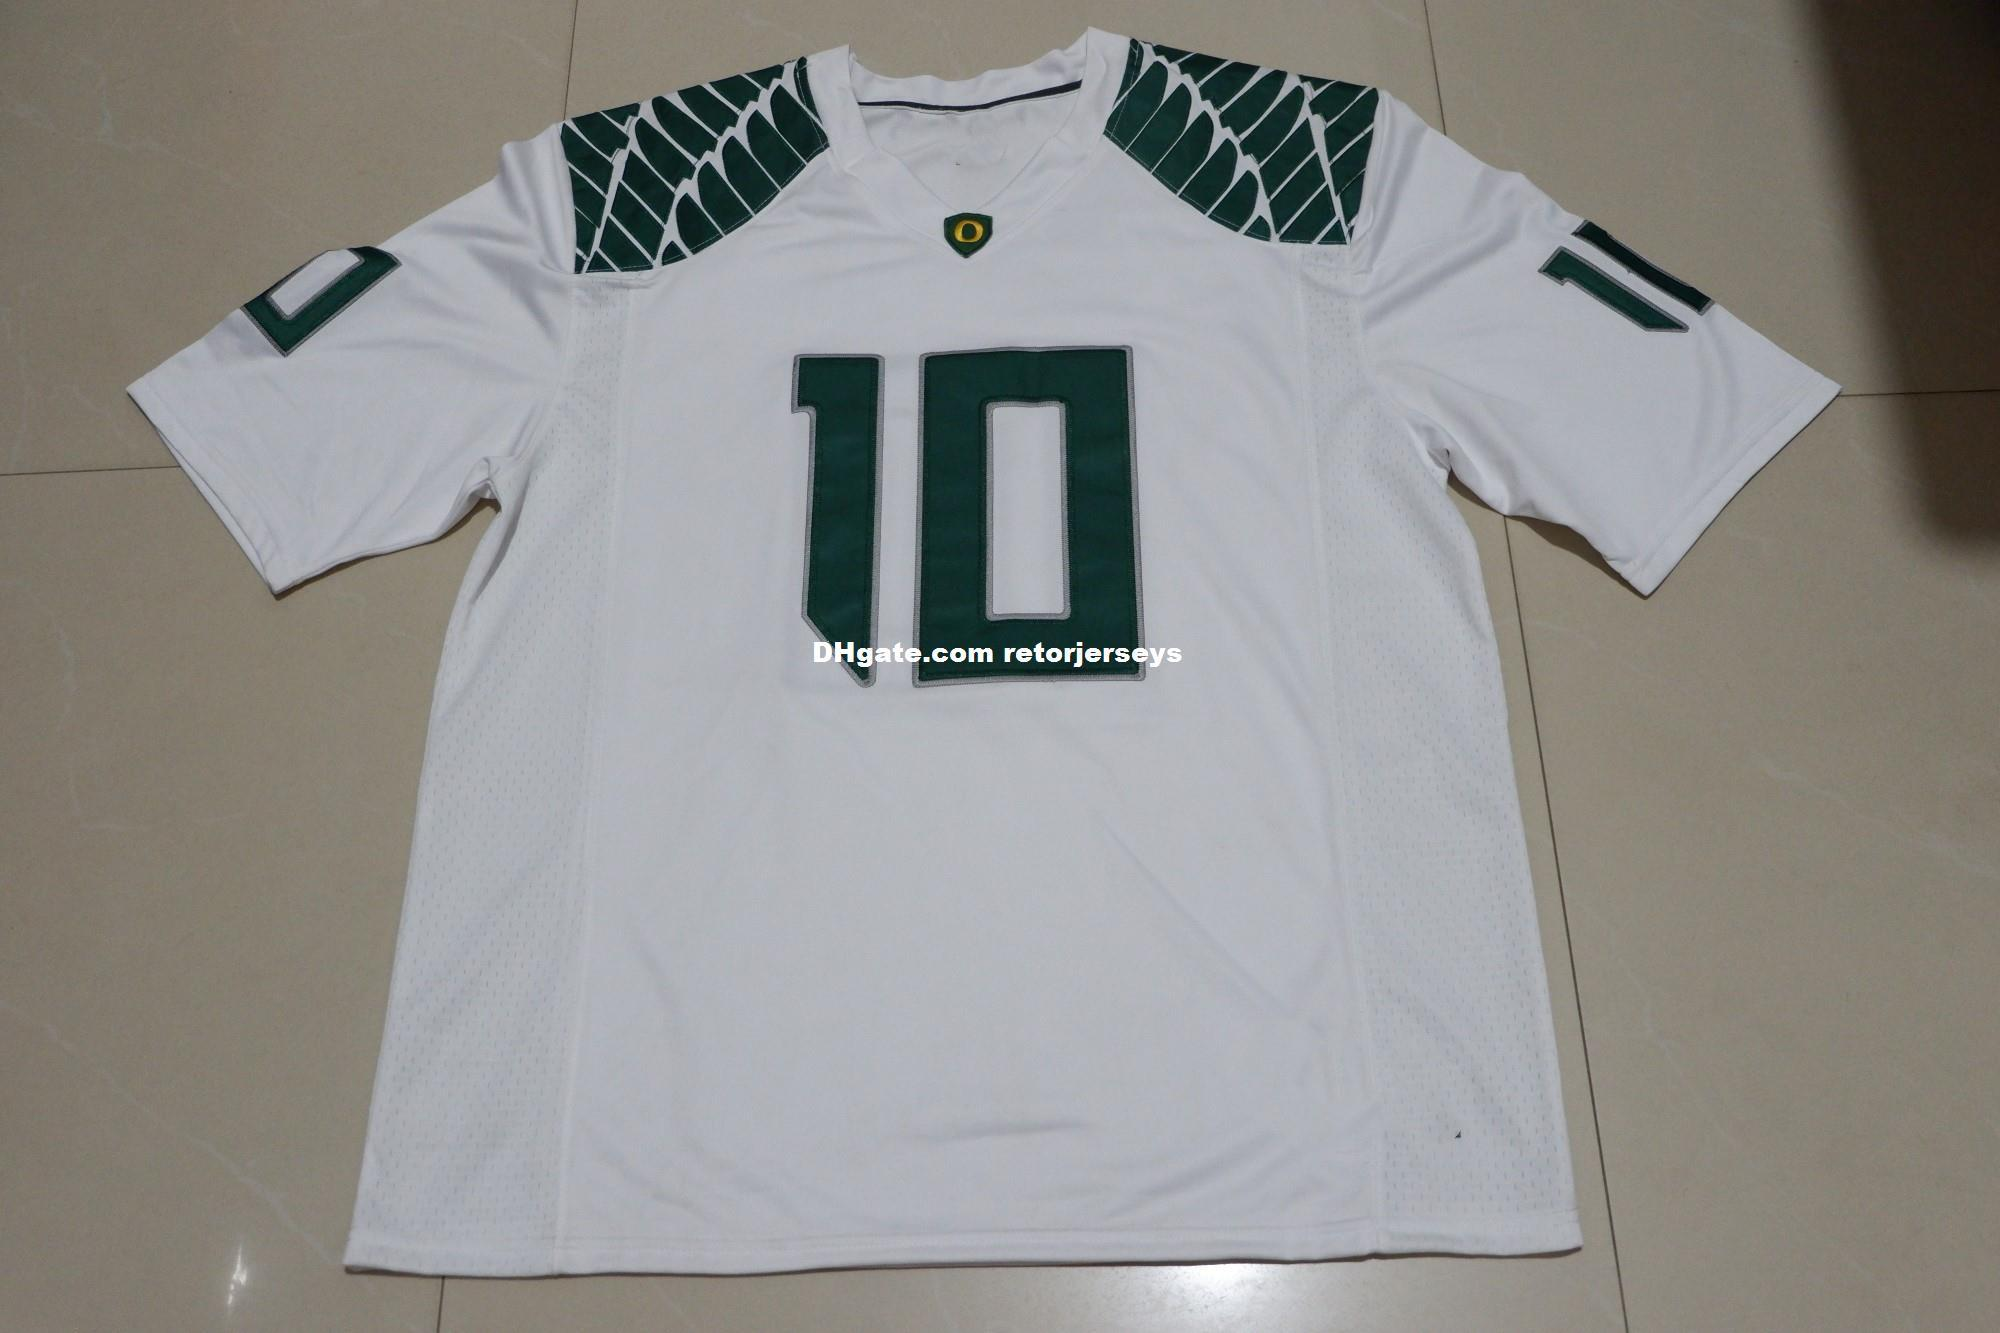 size 40 954e3 b80e5 Men s OREGON DUCKS #10 HERBERT Football Jersey White Customize any name or  number MEN WOMEN YOUTH XS-5XL